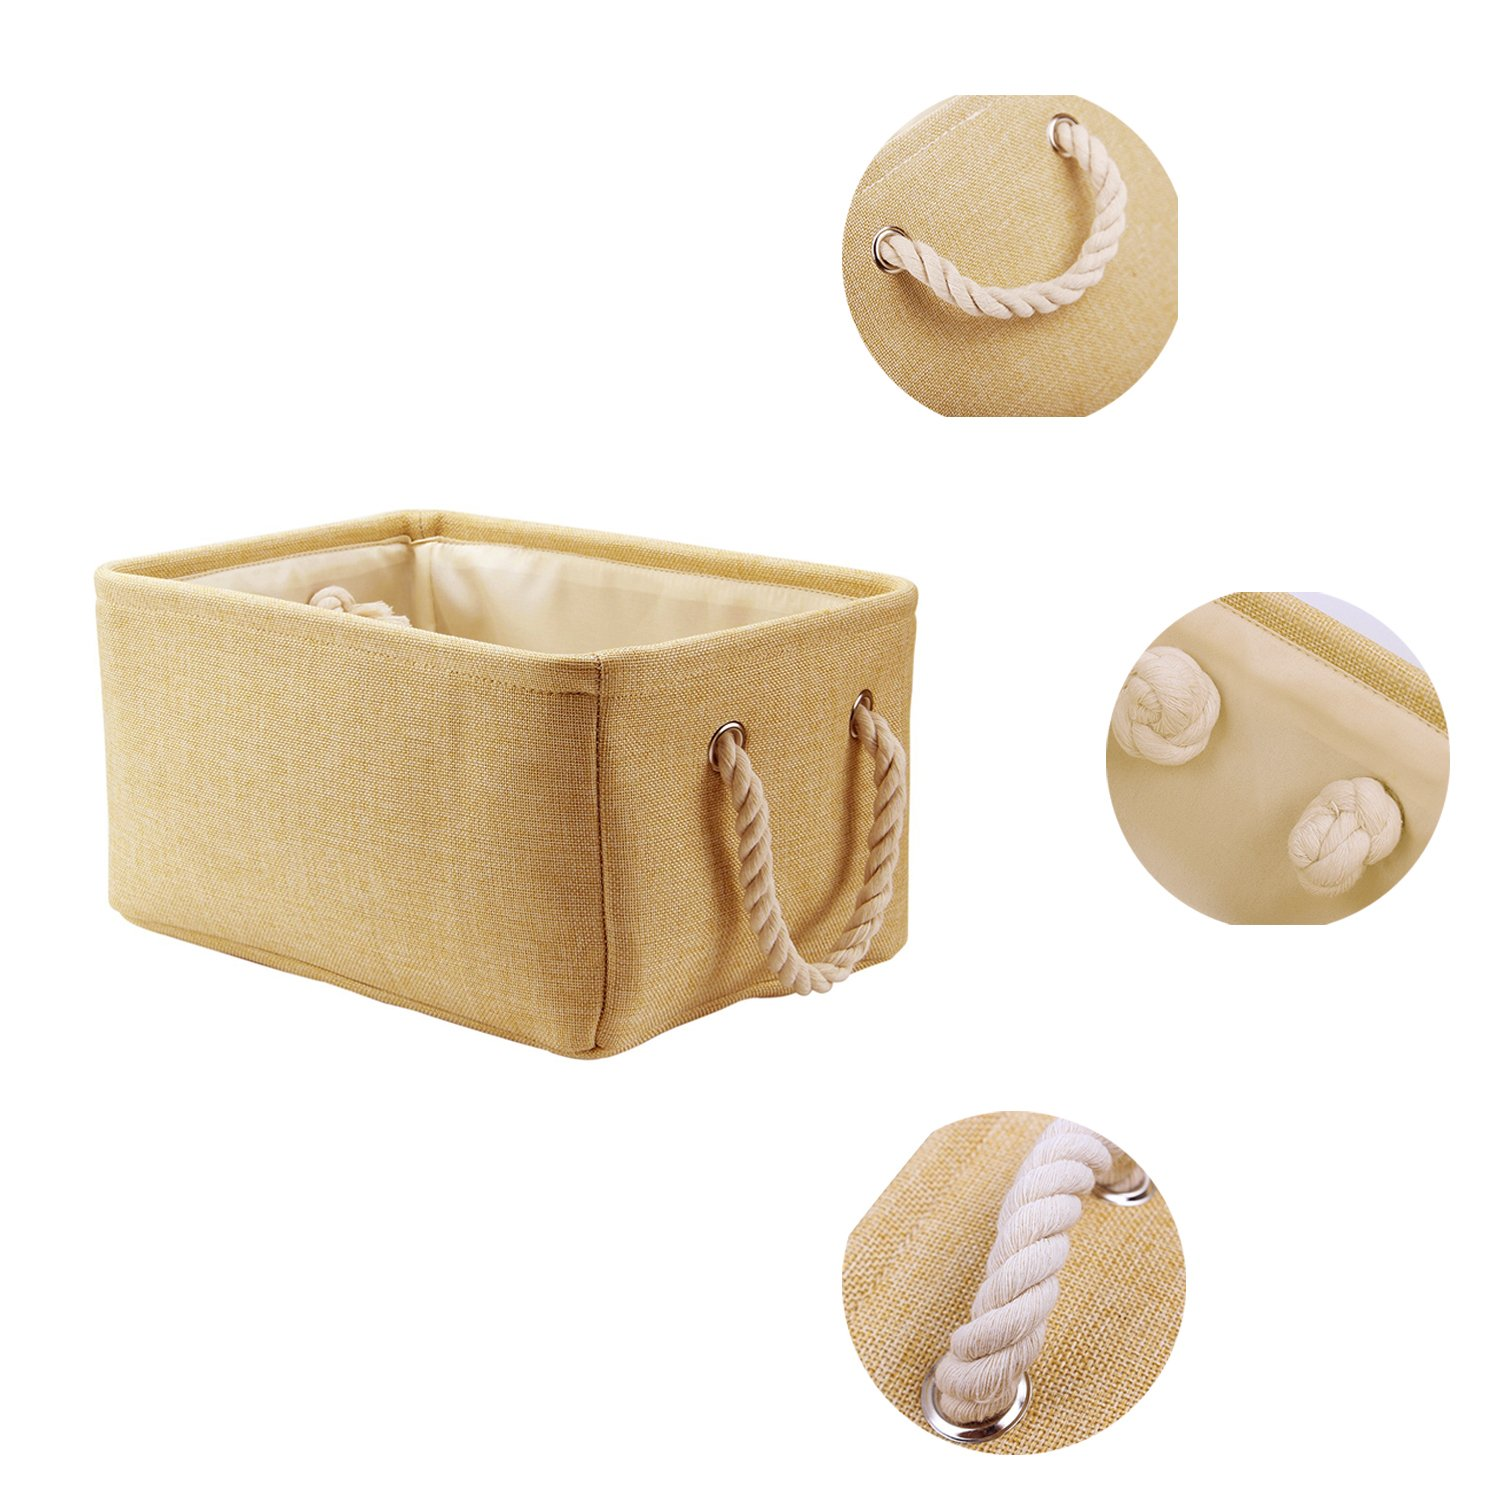 Storage Basket Baby Laundry Basket Toys Box Closet Organizer with Handles,16.1 X 12.2 X 7.9 inch